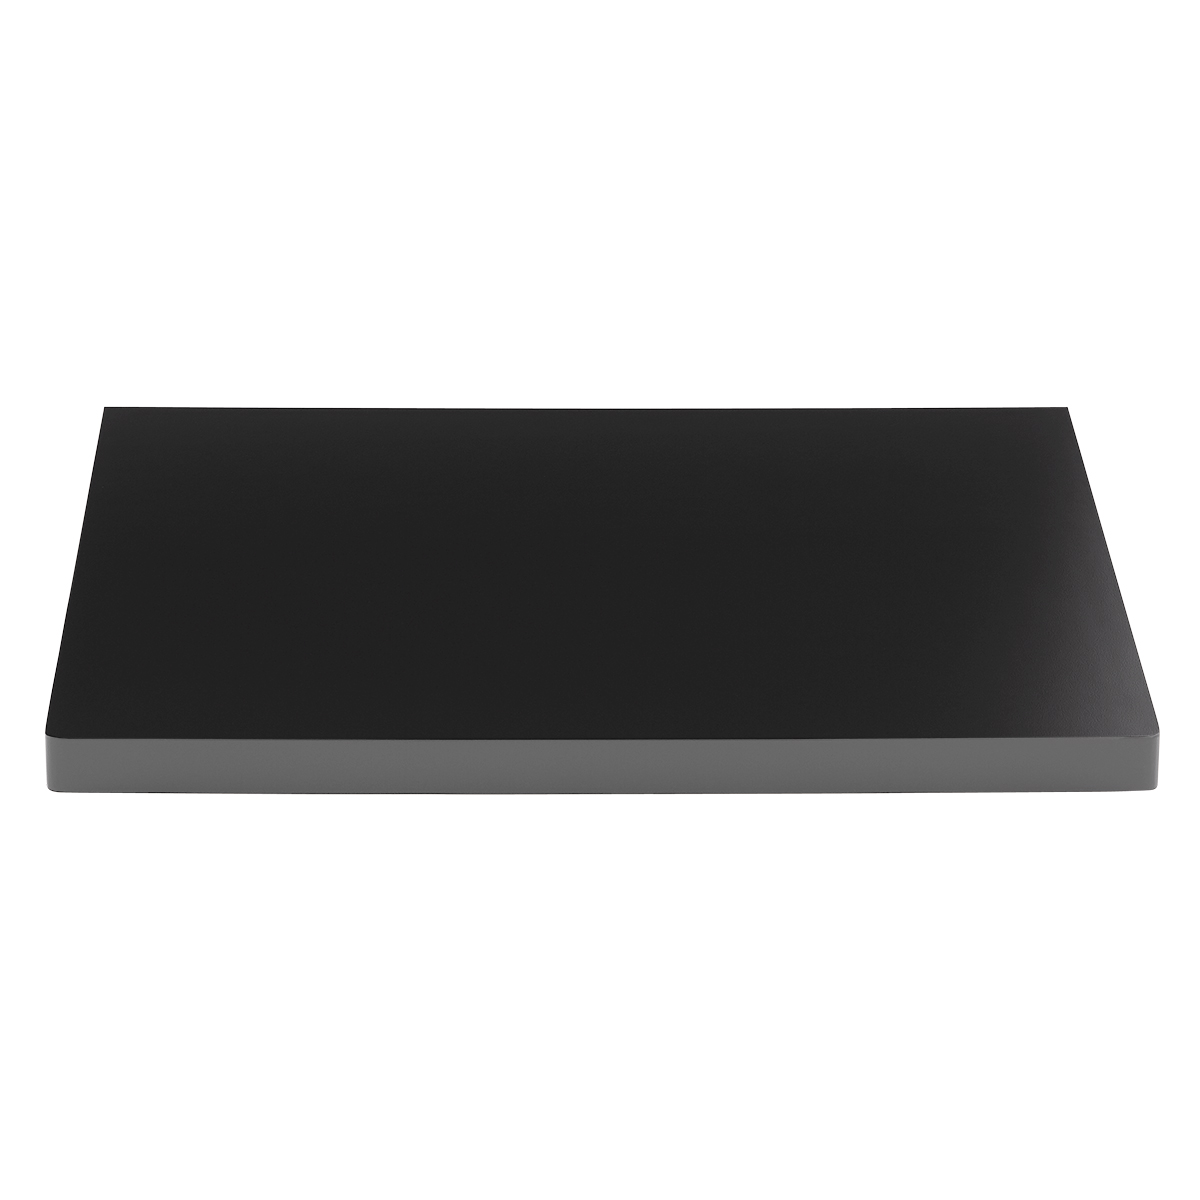 Elfa Décor Desk Tops with Grey Trim